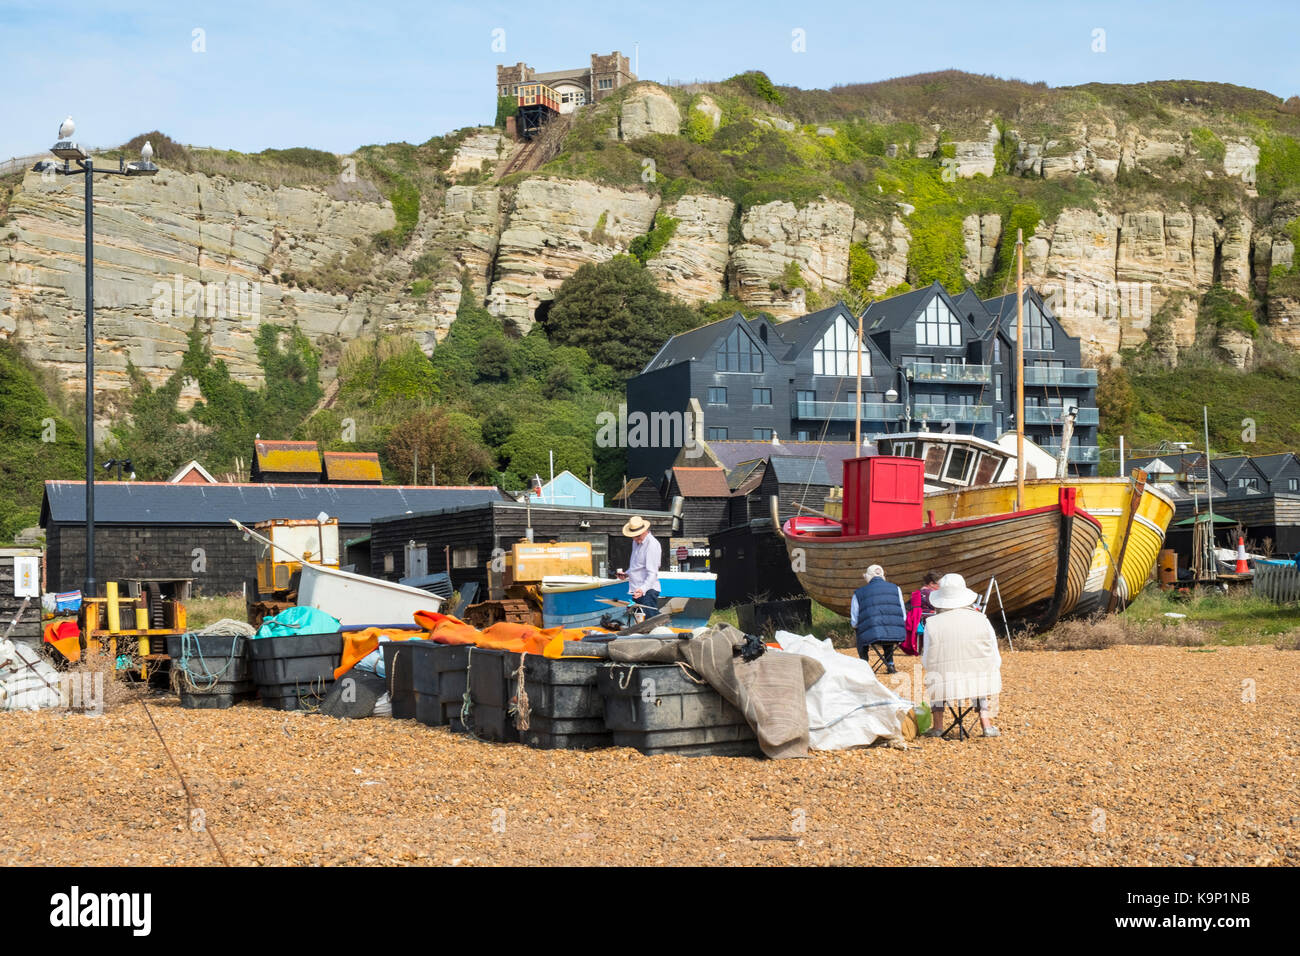 Artists on Hastings Stade Old Town beach drawing the fishing boats, East Sussex, England, UK - Stock Image